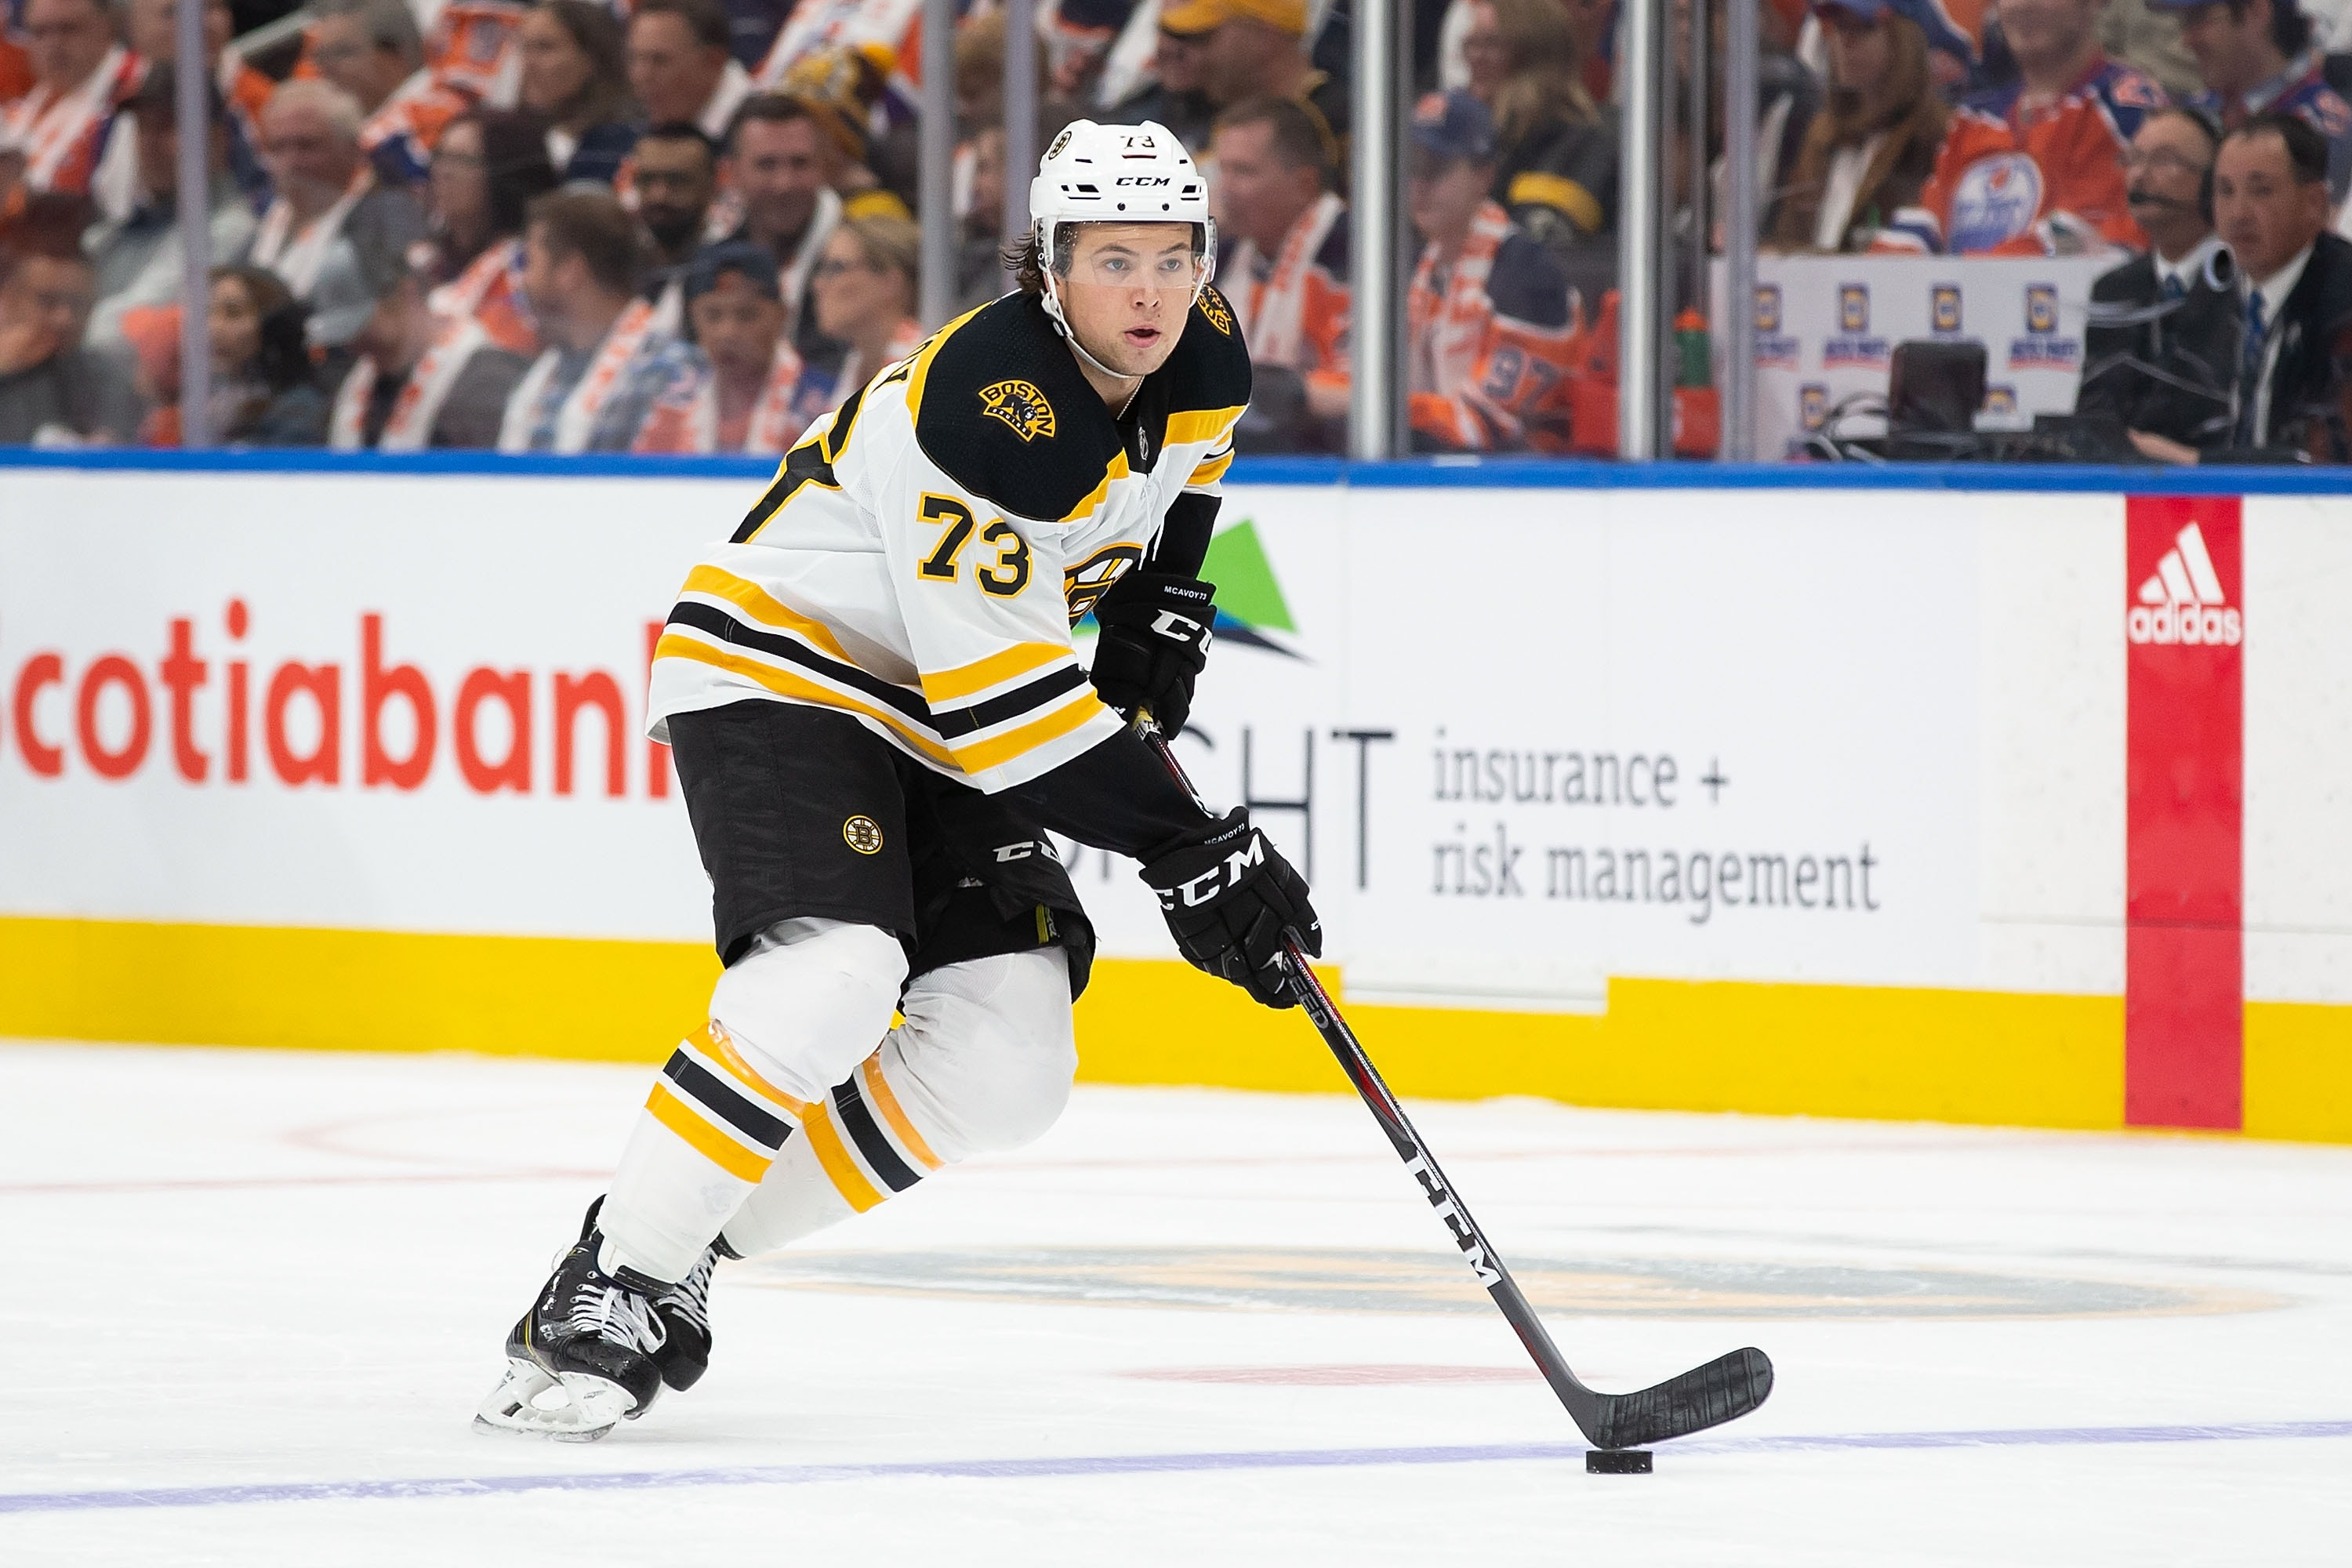 Charlie McAvoy reportedly turned down long-term extension with Bruins last offseason